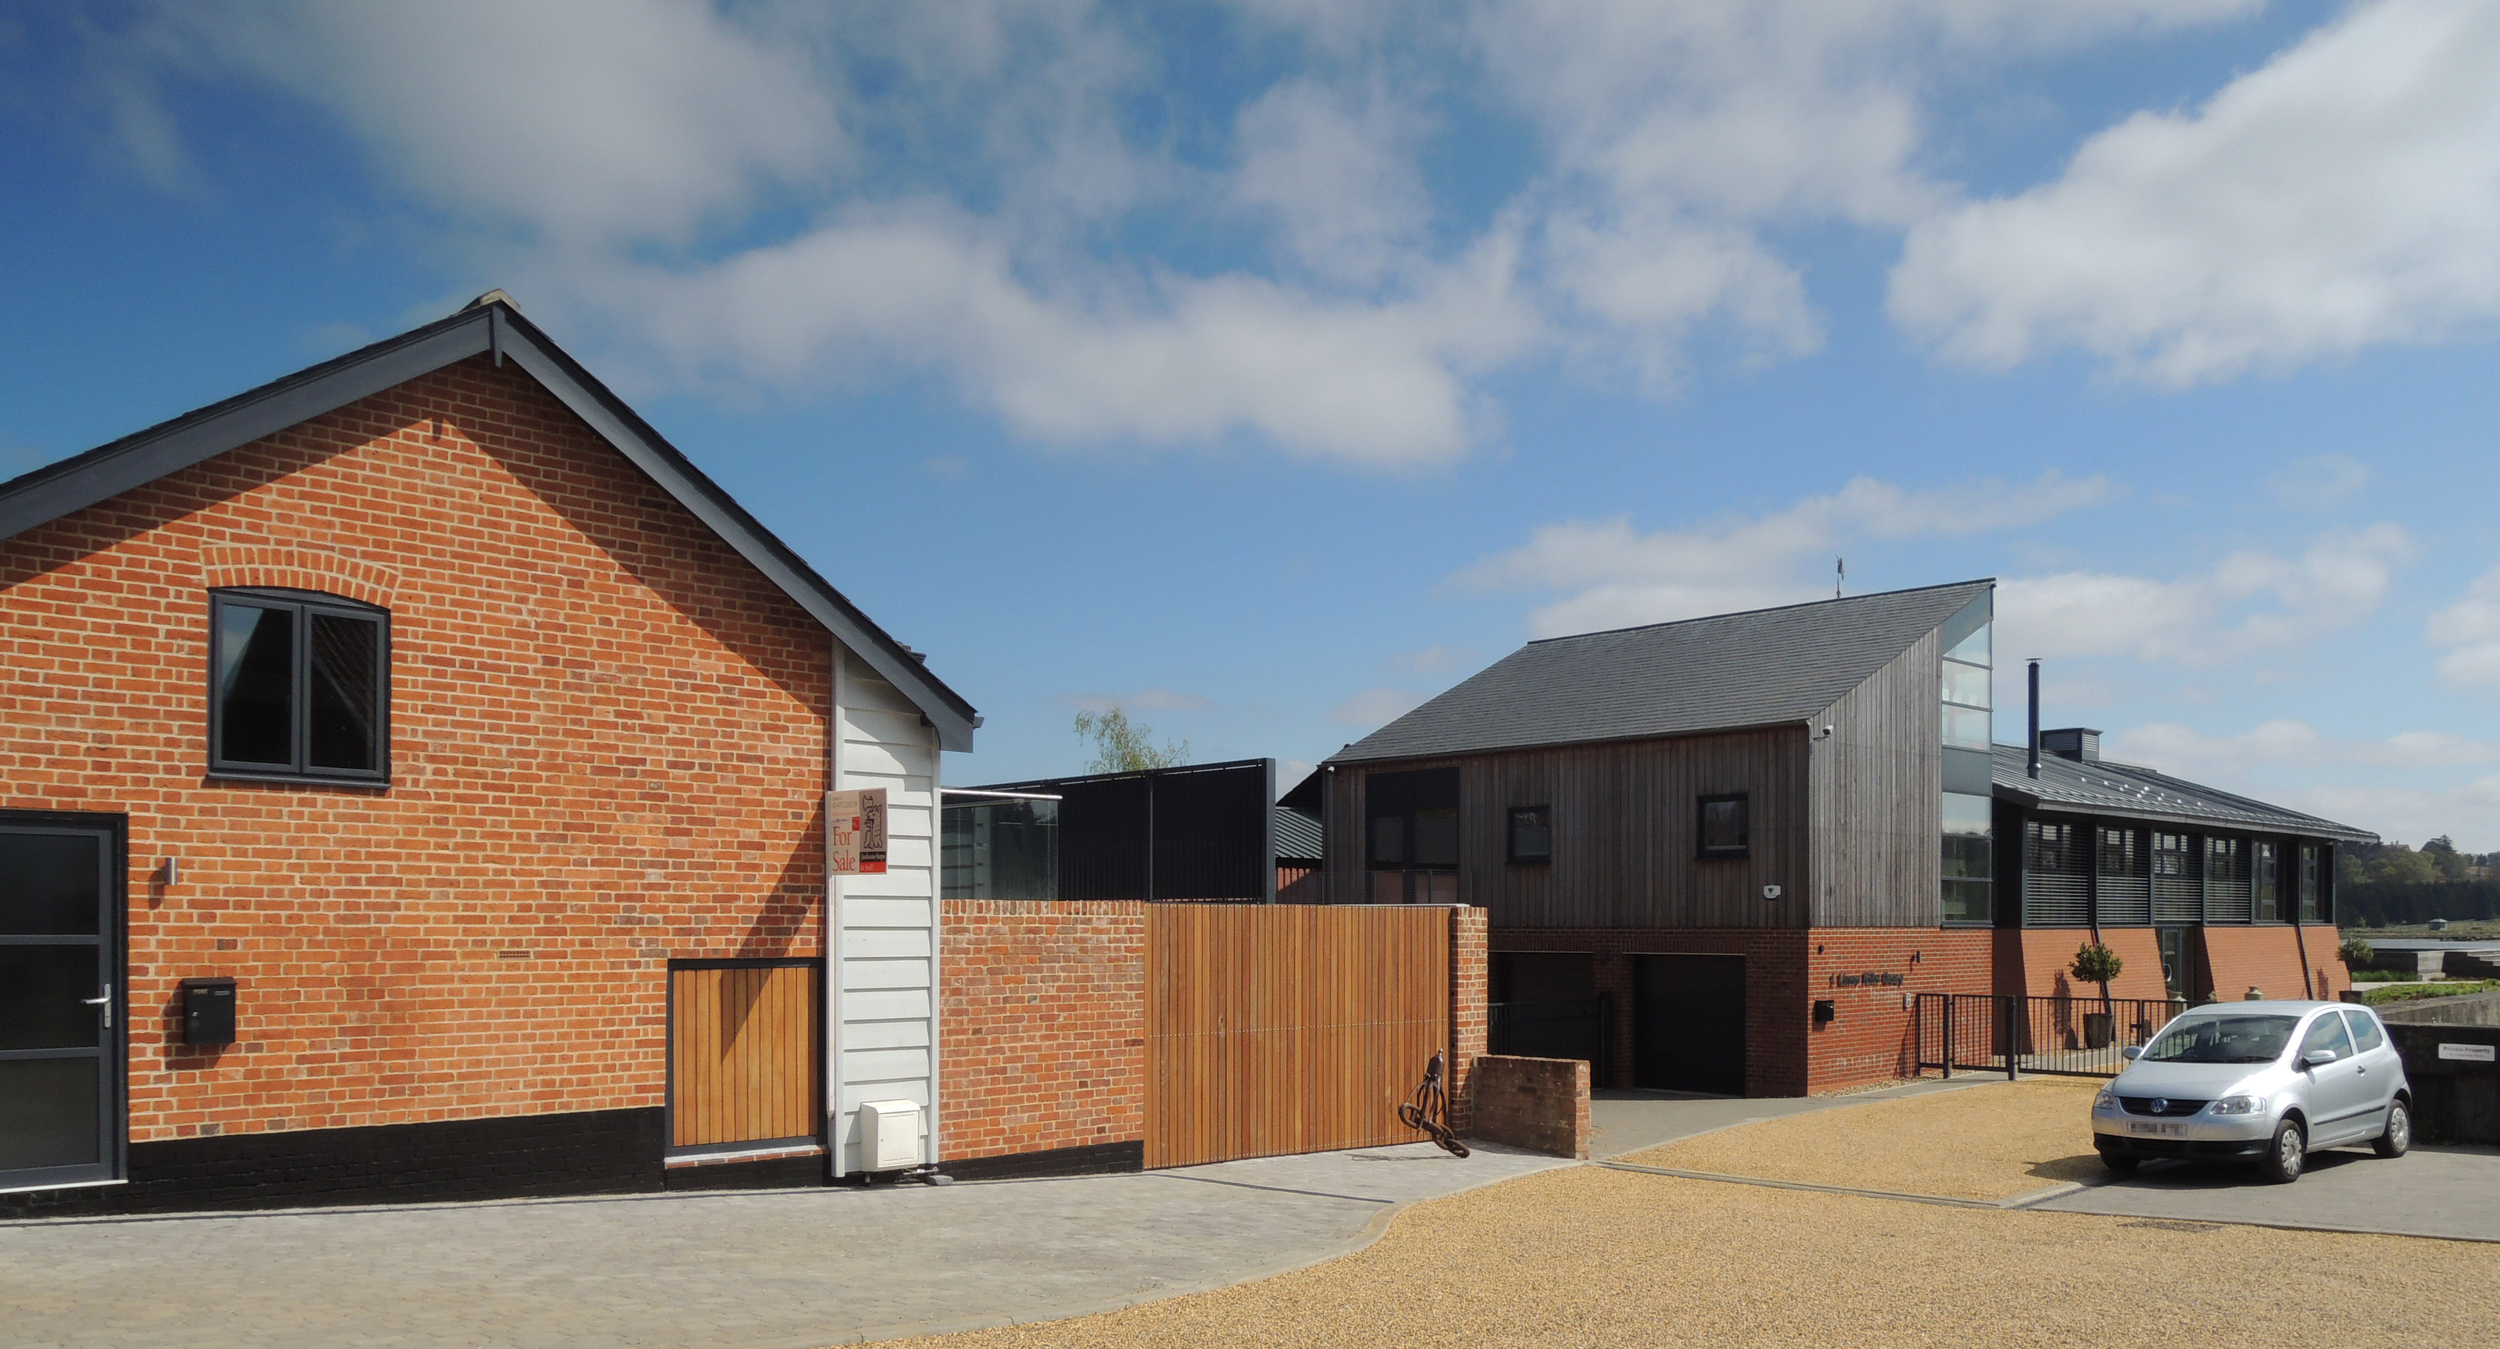 The Chandlery completes an attractive development of Lime Kiln Quay.  Address:  Former Chandlery, Lime Kiln Quay,Woodbridge   Client:  Omnicorp Ltd   Main Contractor:  Bridgewood Ltd